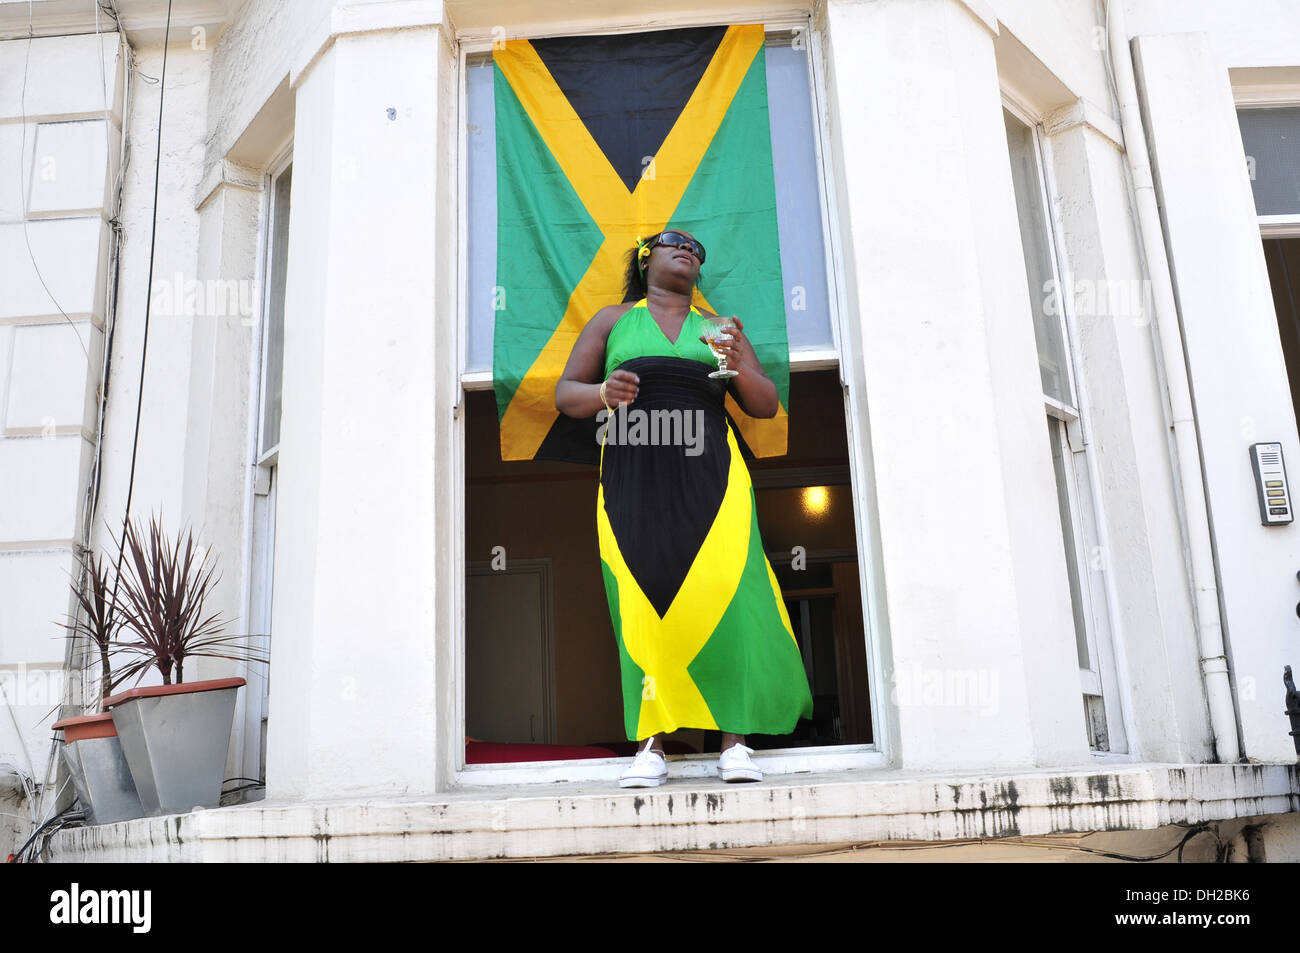 A woman wearing a Jamaican flag dress at the Notting Hill Carnival, London Stock Photo